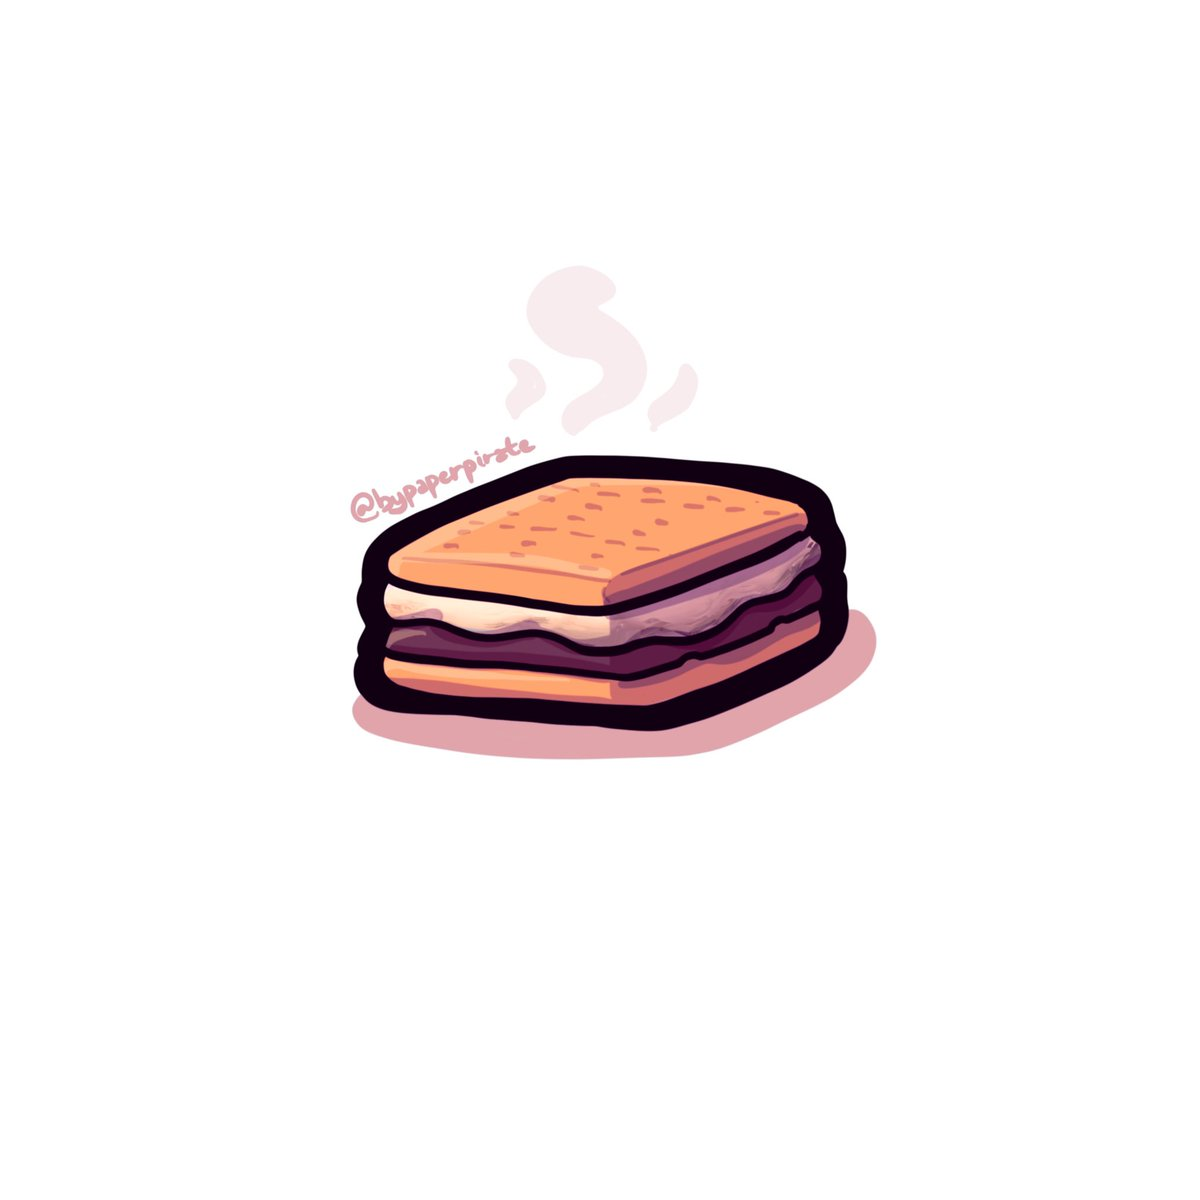 BLACK OUT AT MY PLACE. WAAH EVERYONE KEEP SAFE FROM THIS STORMY NIGHT.  ..since I drew this this morning, I'll go and make some s'mores—gonna pretend I'm not scared of the dark and this is just some sort of camping trip when my niece gets here.  #NationalSmoresDay <br>http://pic.twitter.com/Q5qj7ZsVbL